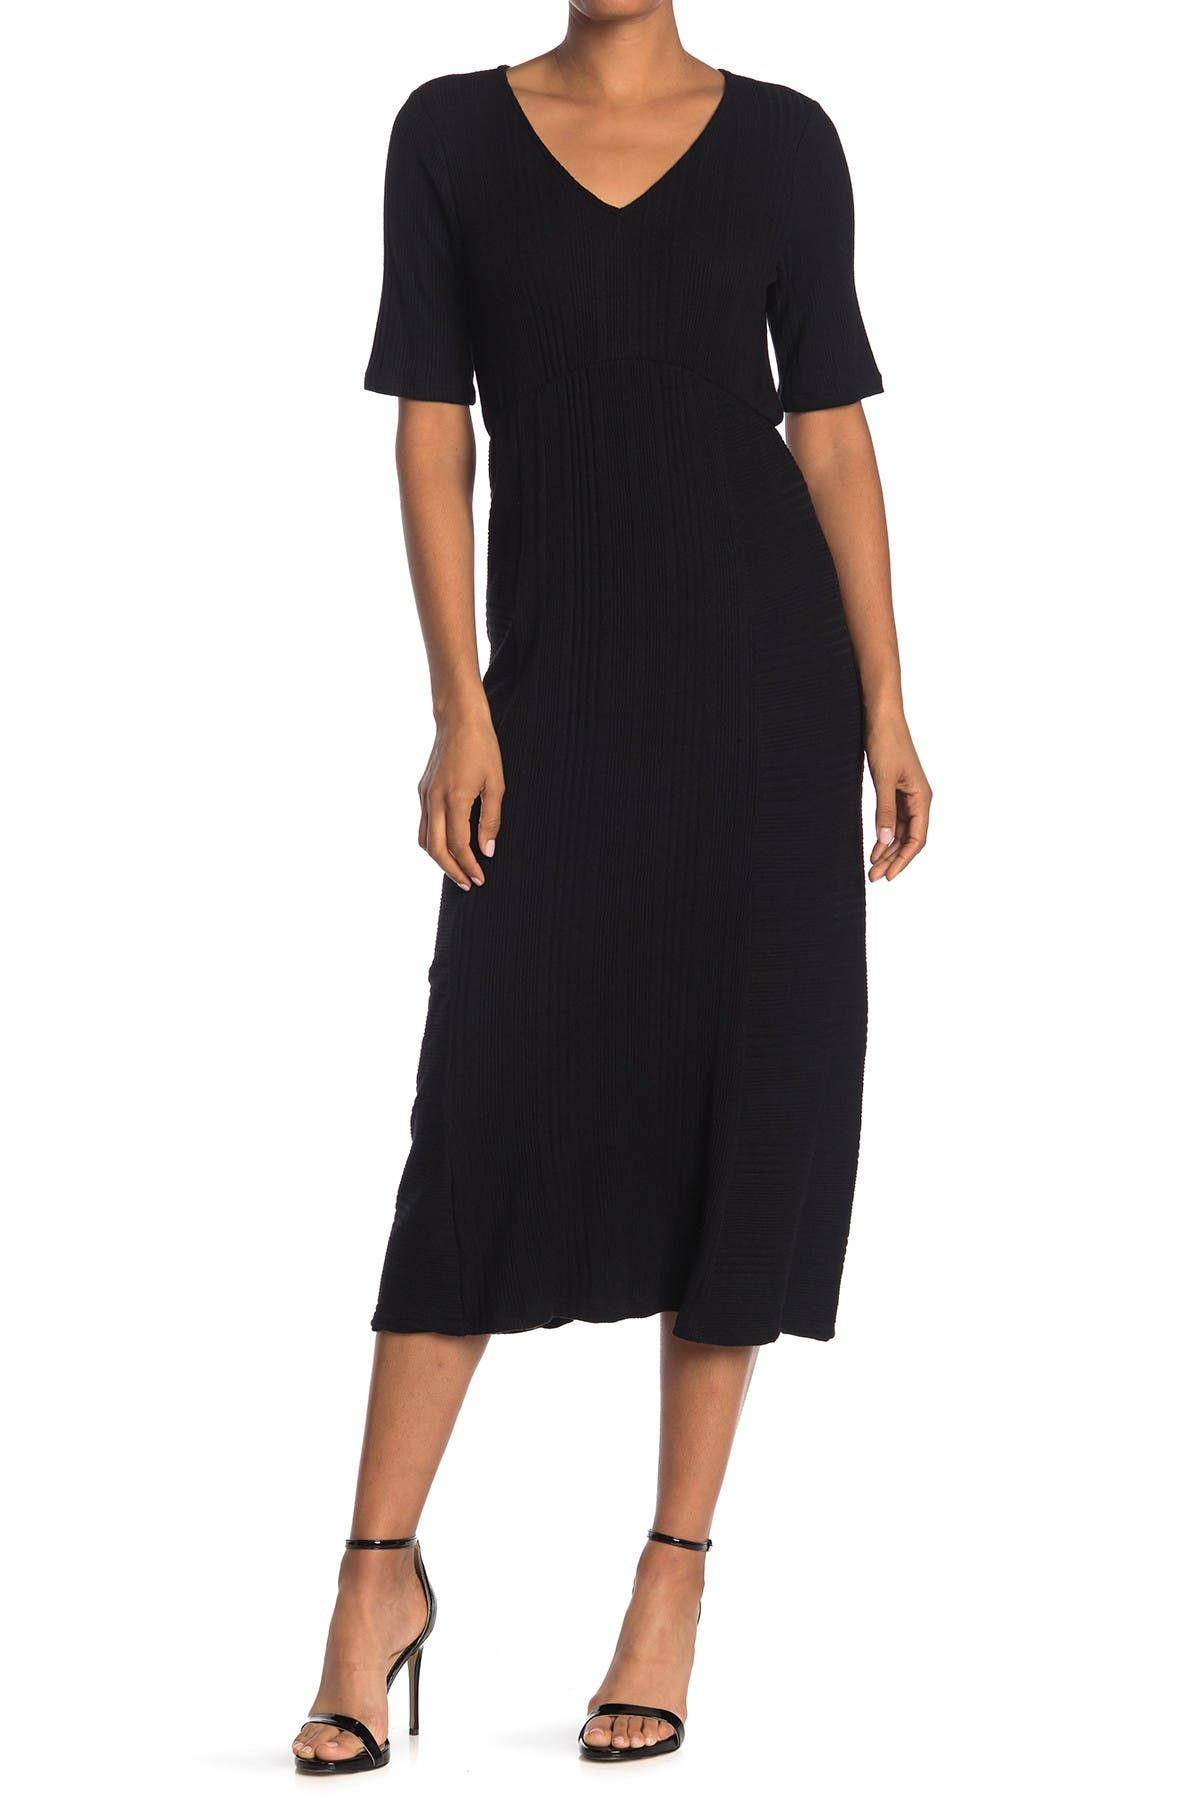 Image of WEST KEI Ribbed Knit Sweater Dress